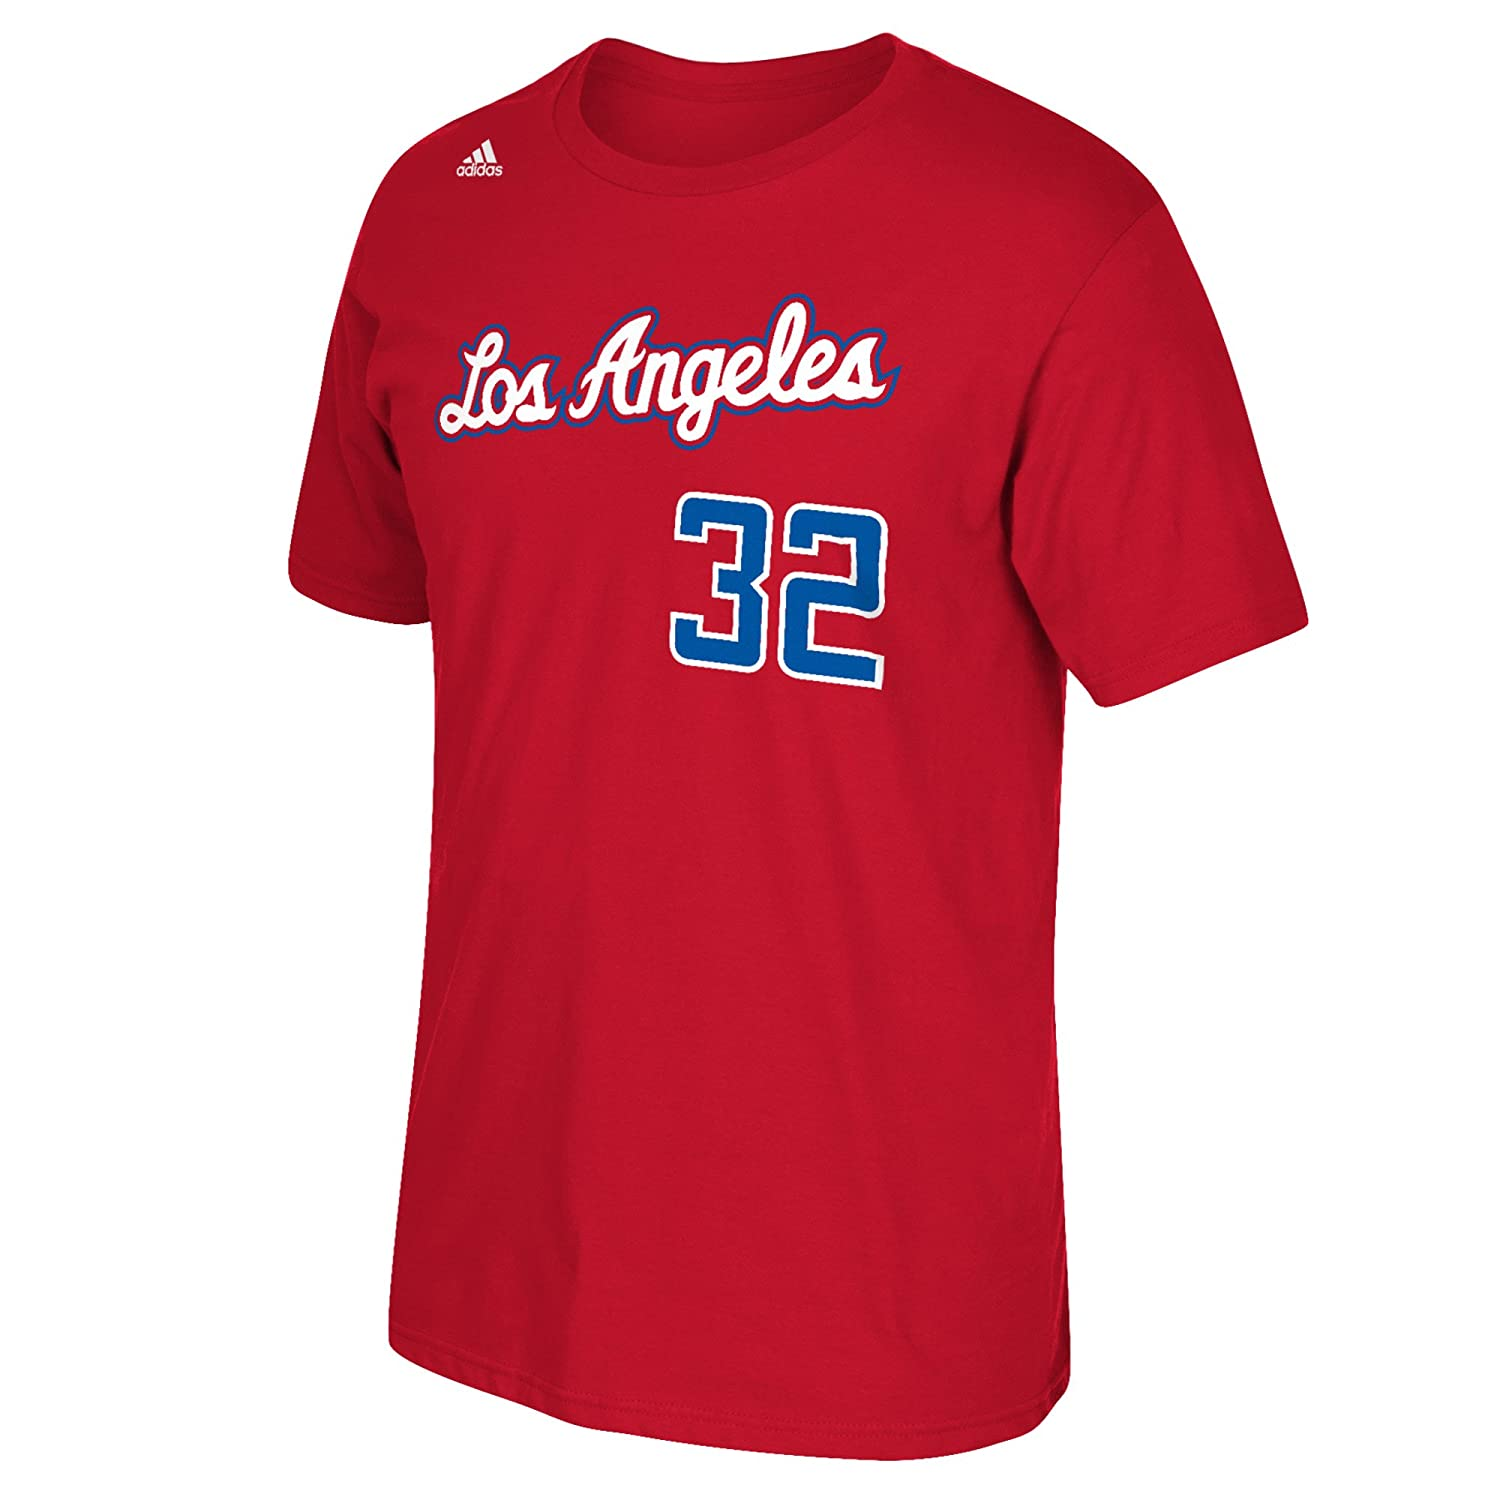 576aa8f2c0a NBA adidas Blake Griffin Los Angeles Clippers  32 Net Number T-shirt - Red